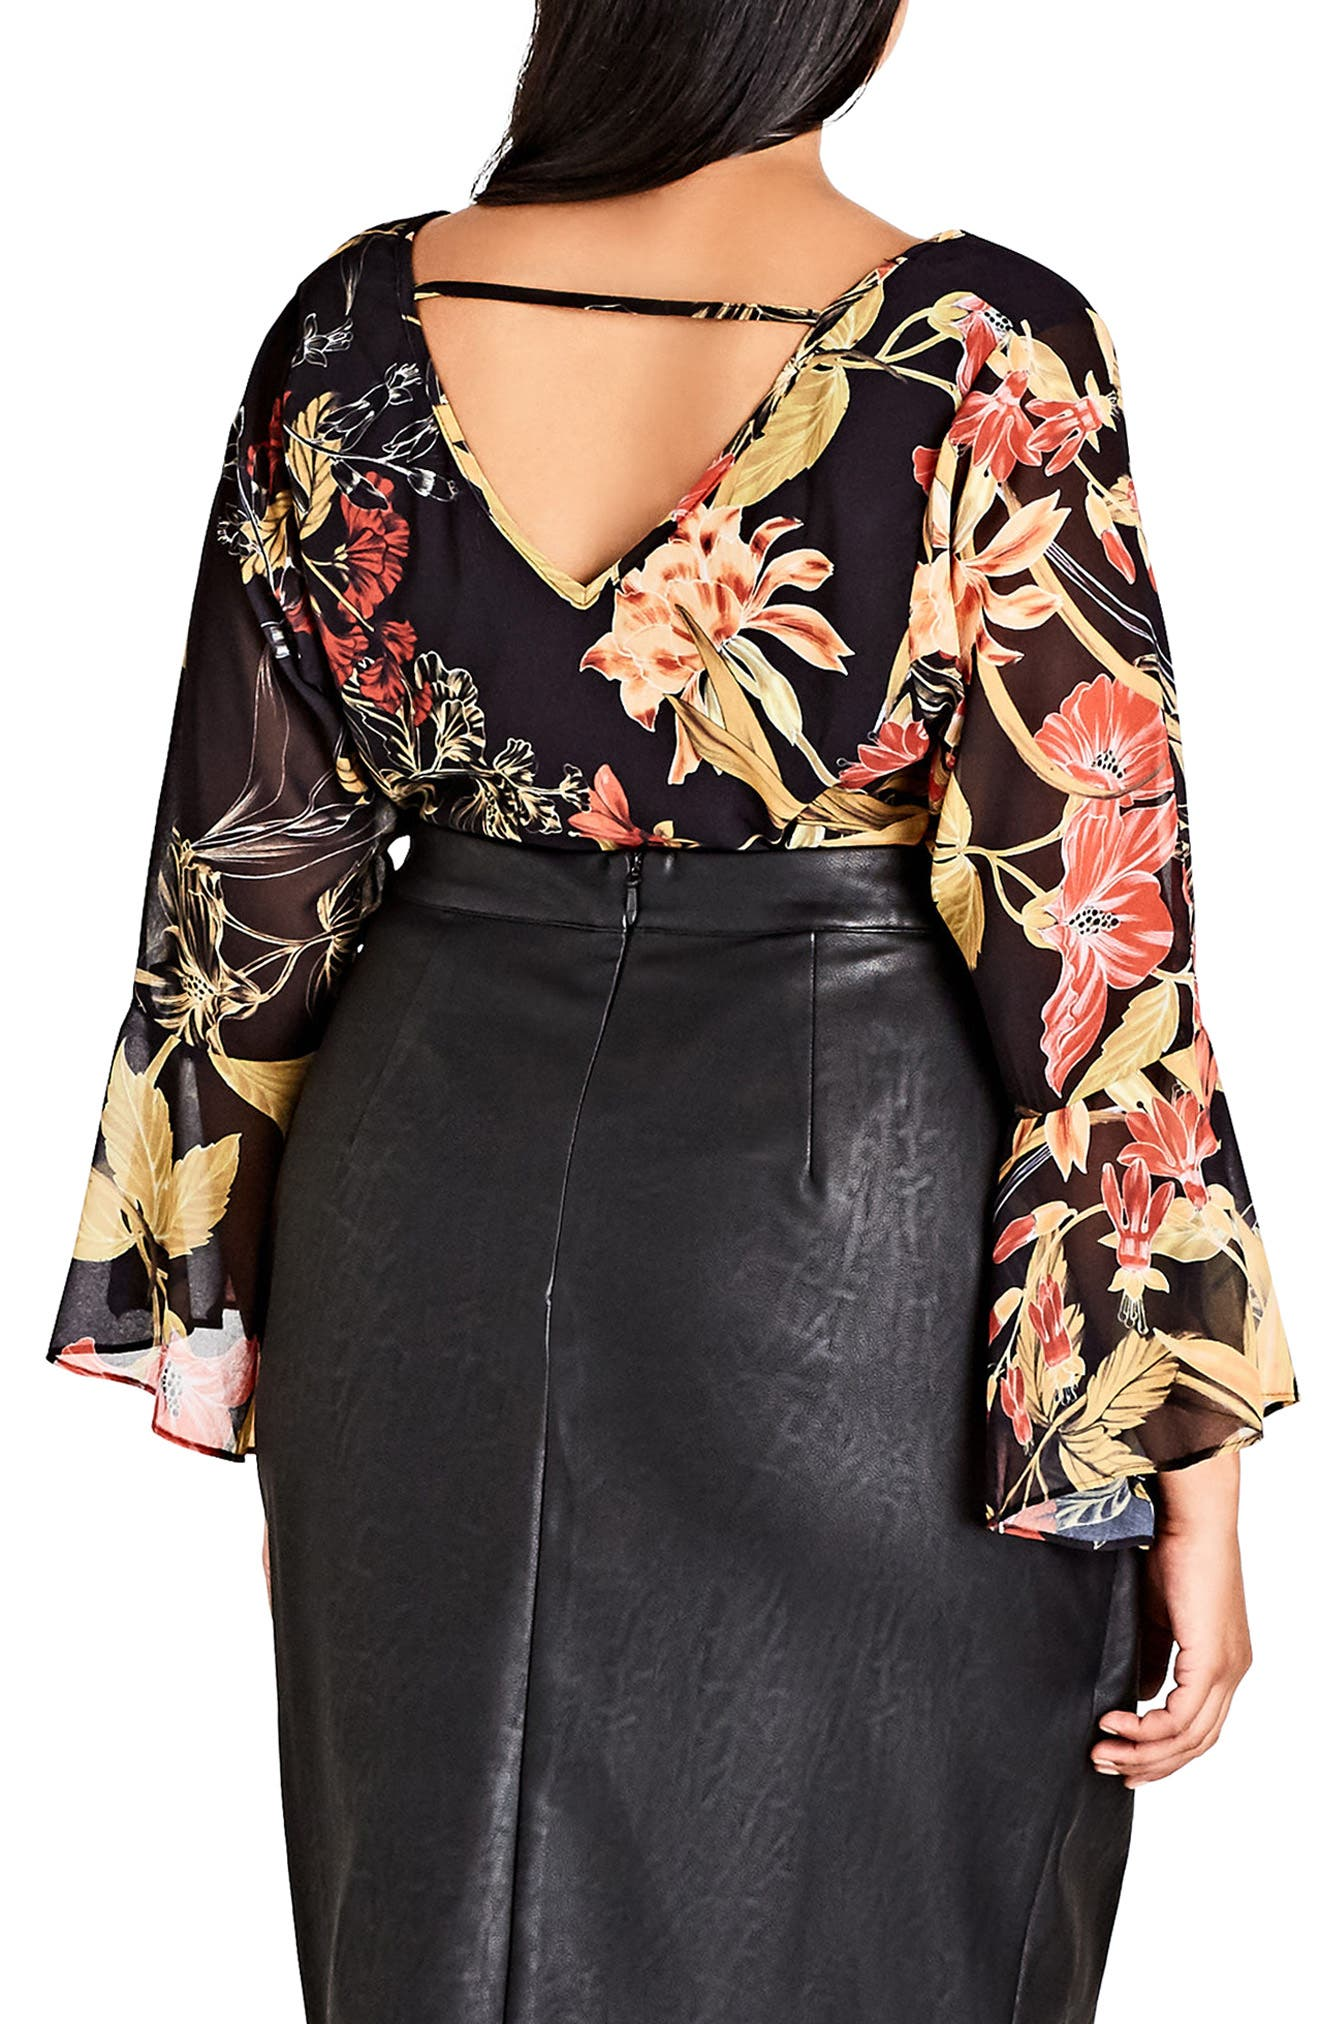 Gold Floral Bell Sleeve Blouse,                             Alternate thumbnail 2, color,                             001